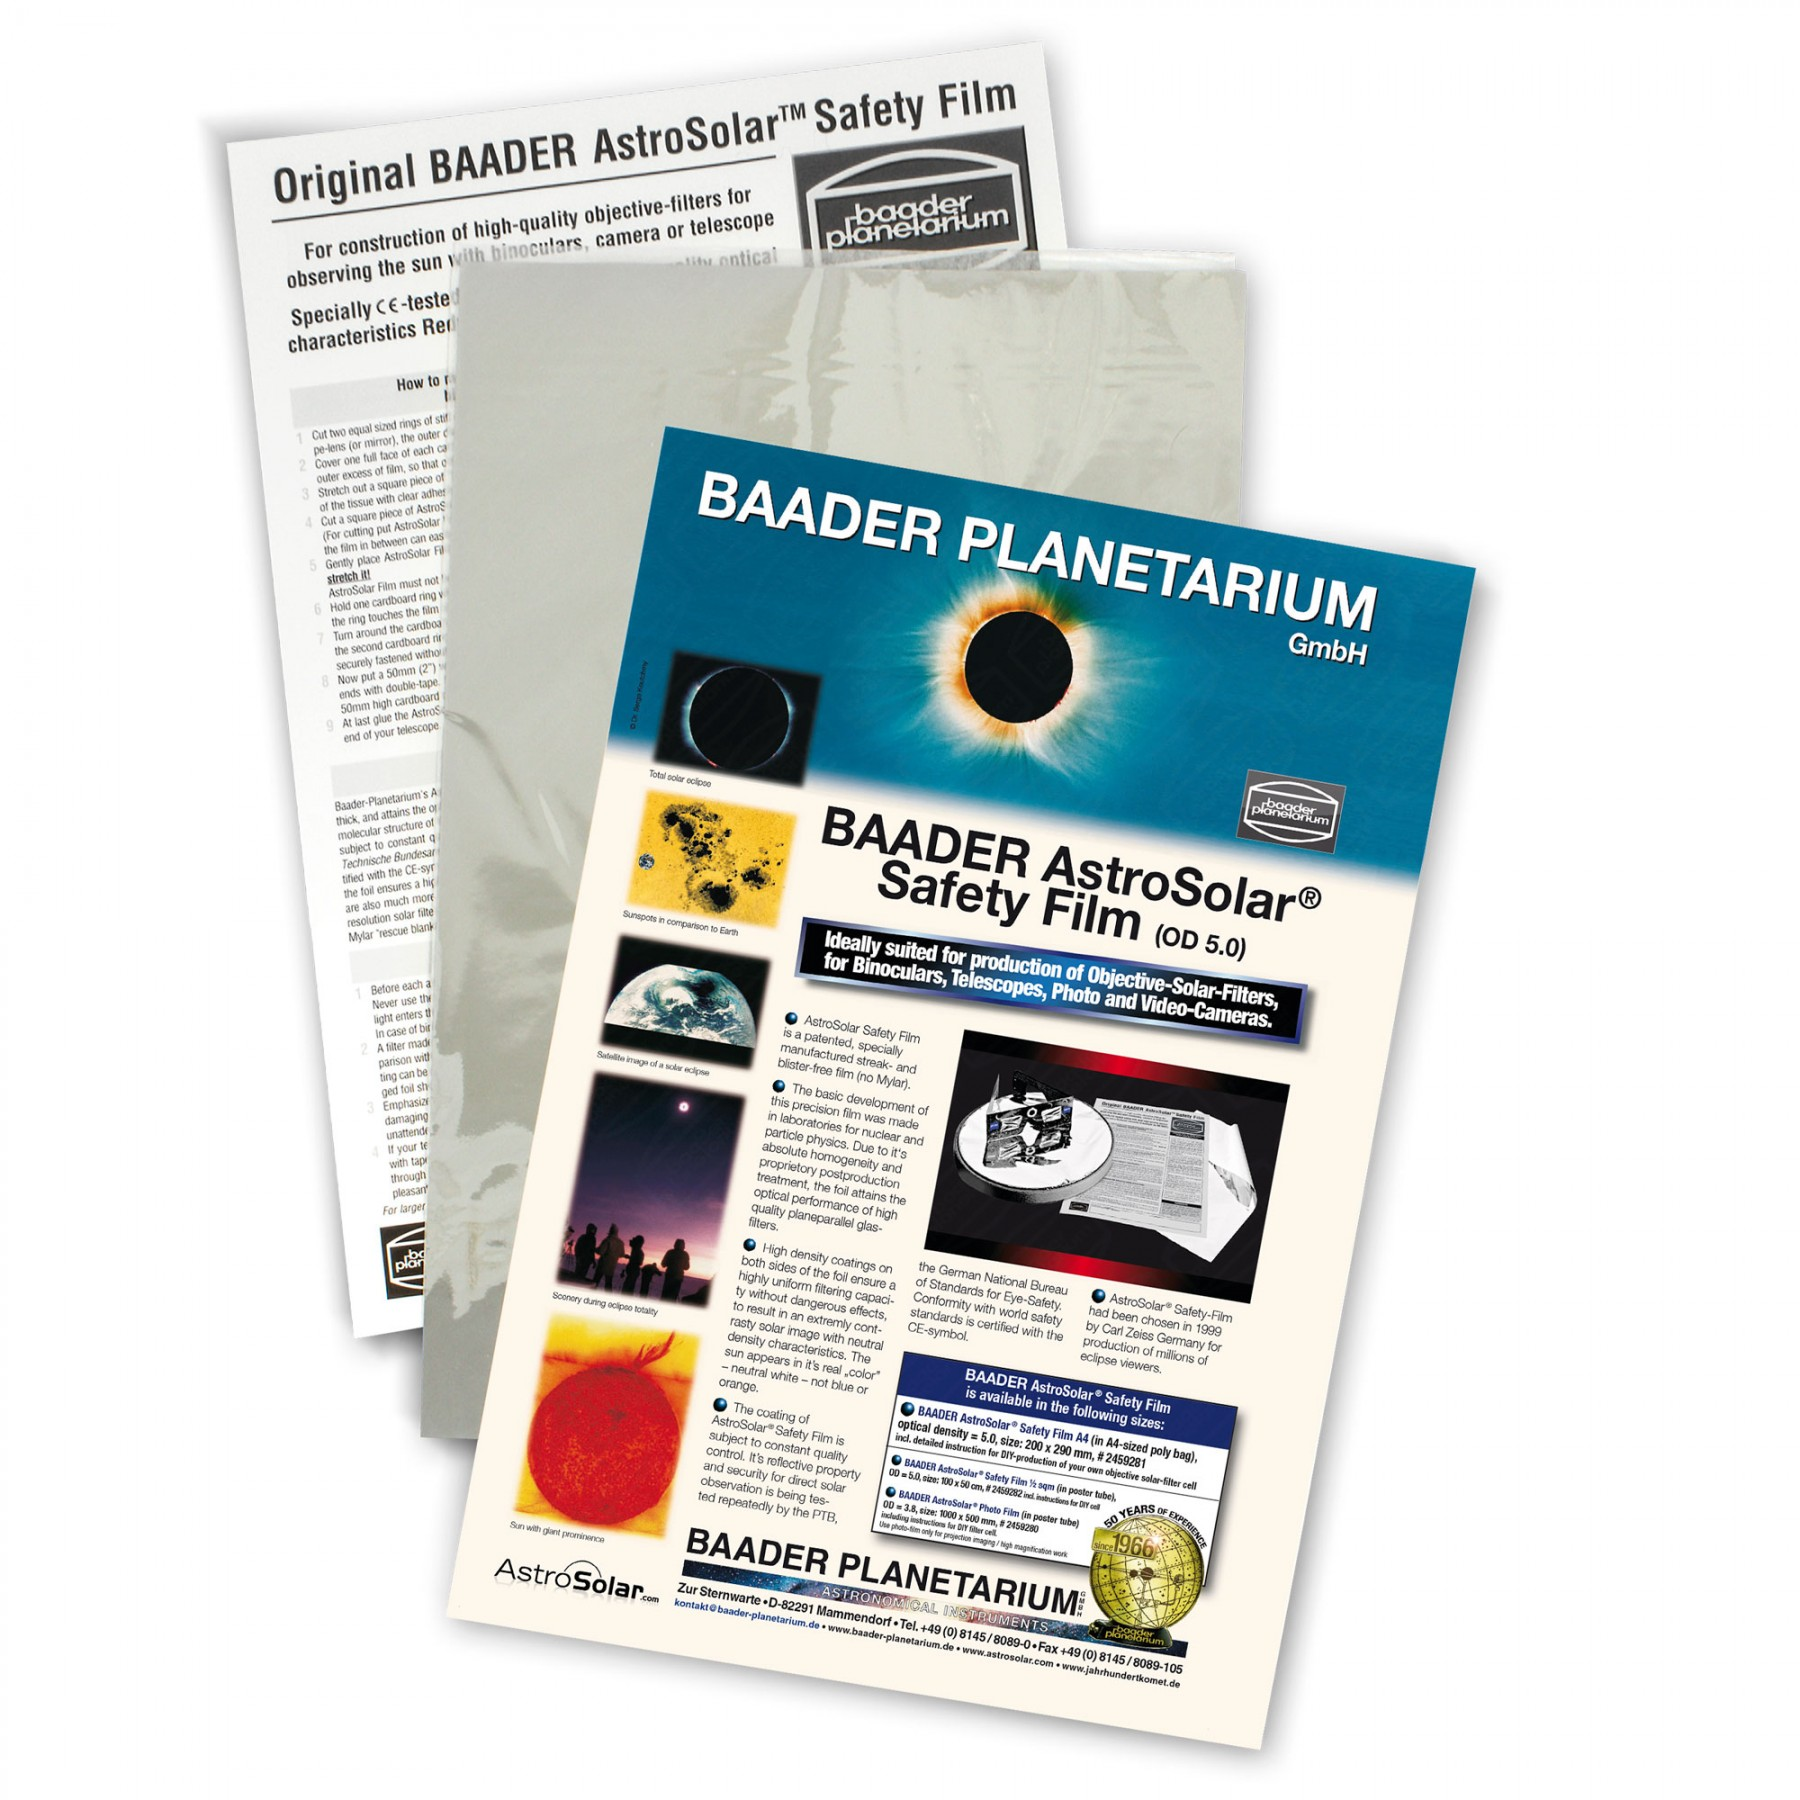 Baader AstroSolar Safety Film OD 5.0 - 20 x 30 cm